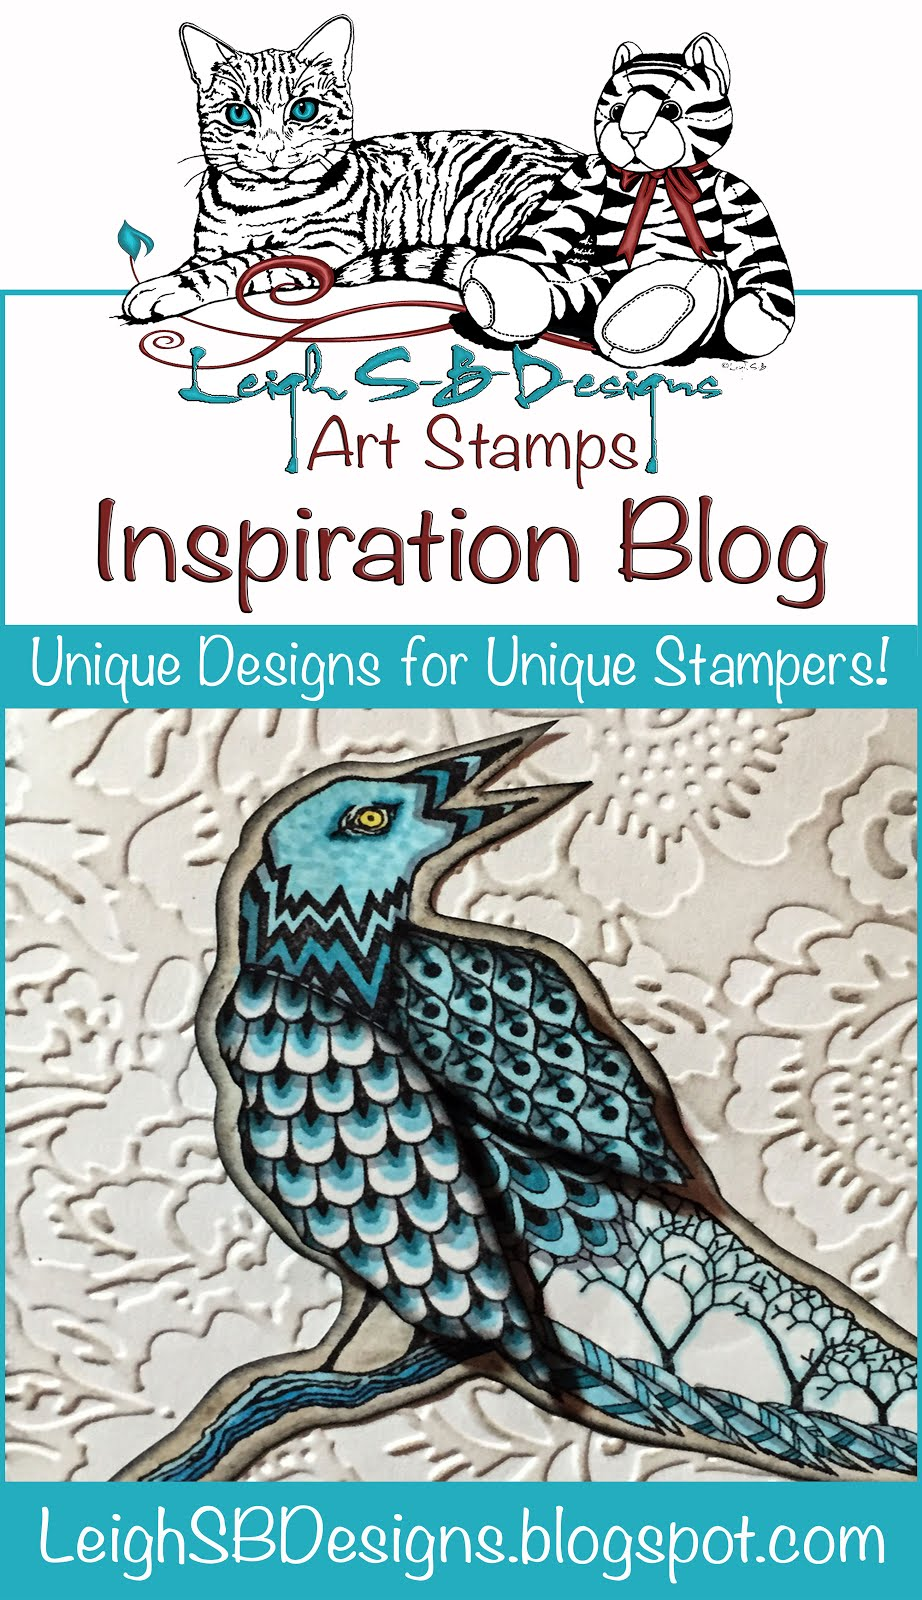 LeighSBDesigns Inspiration Blog